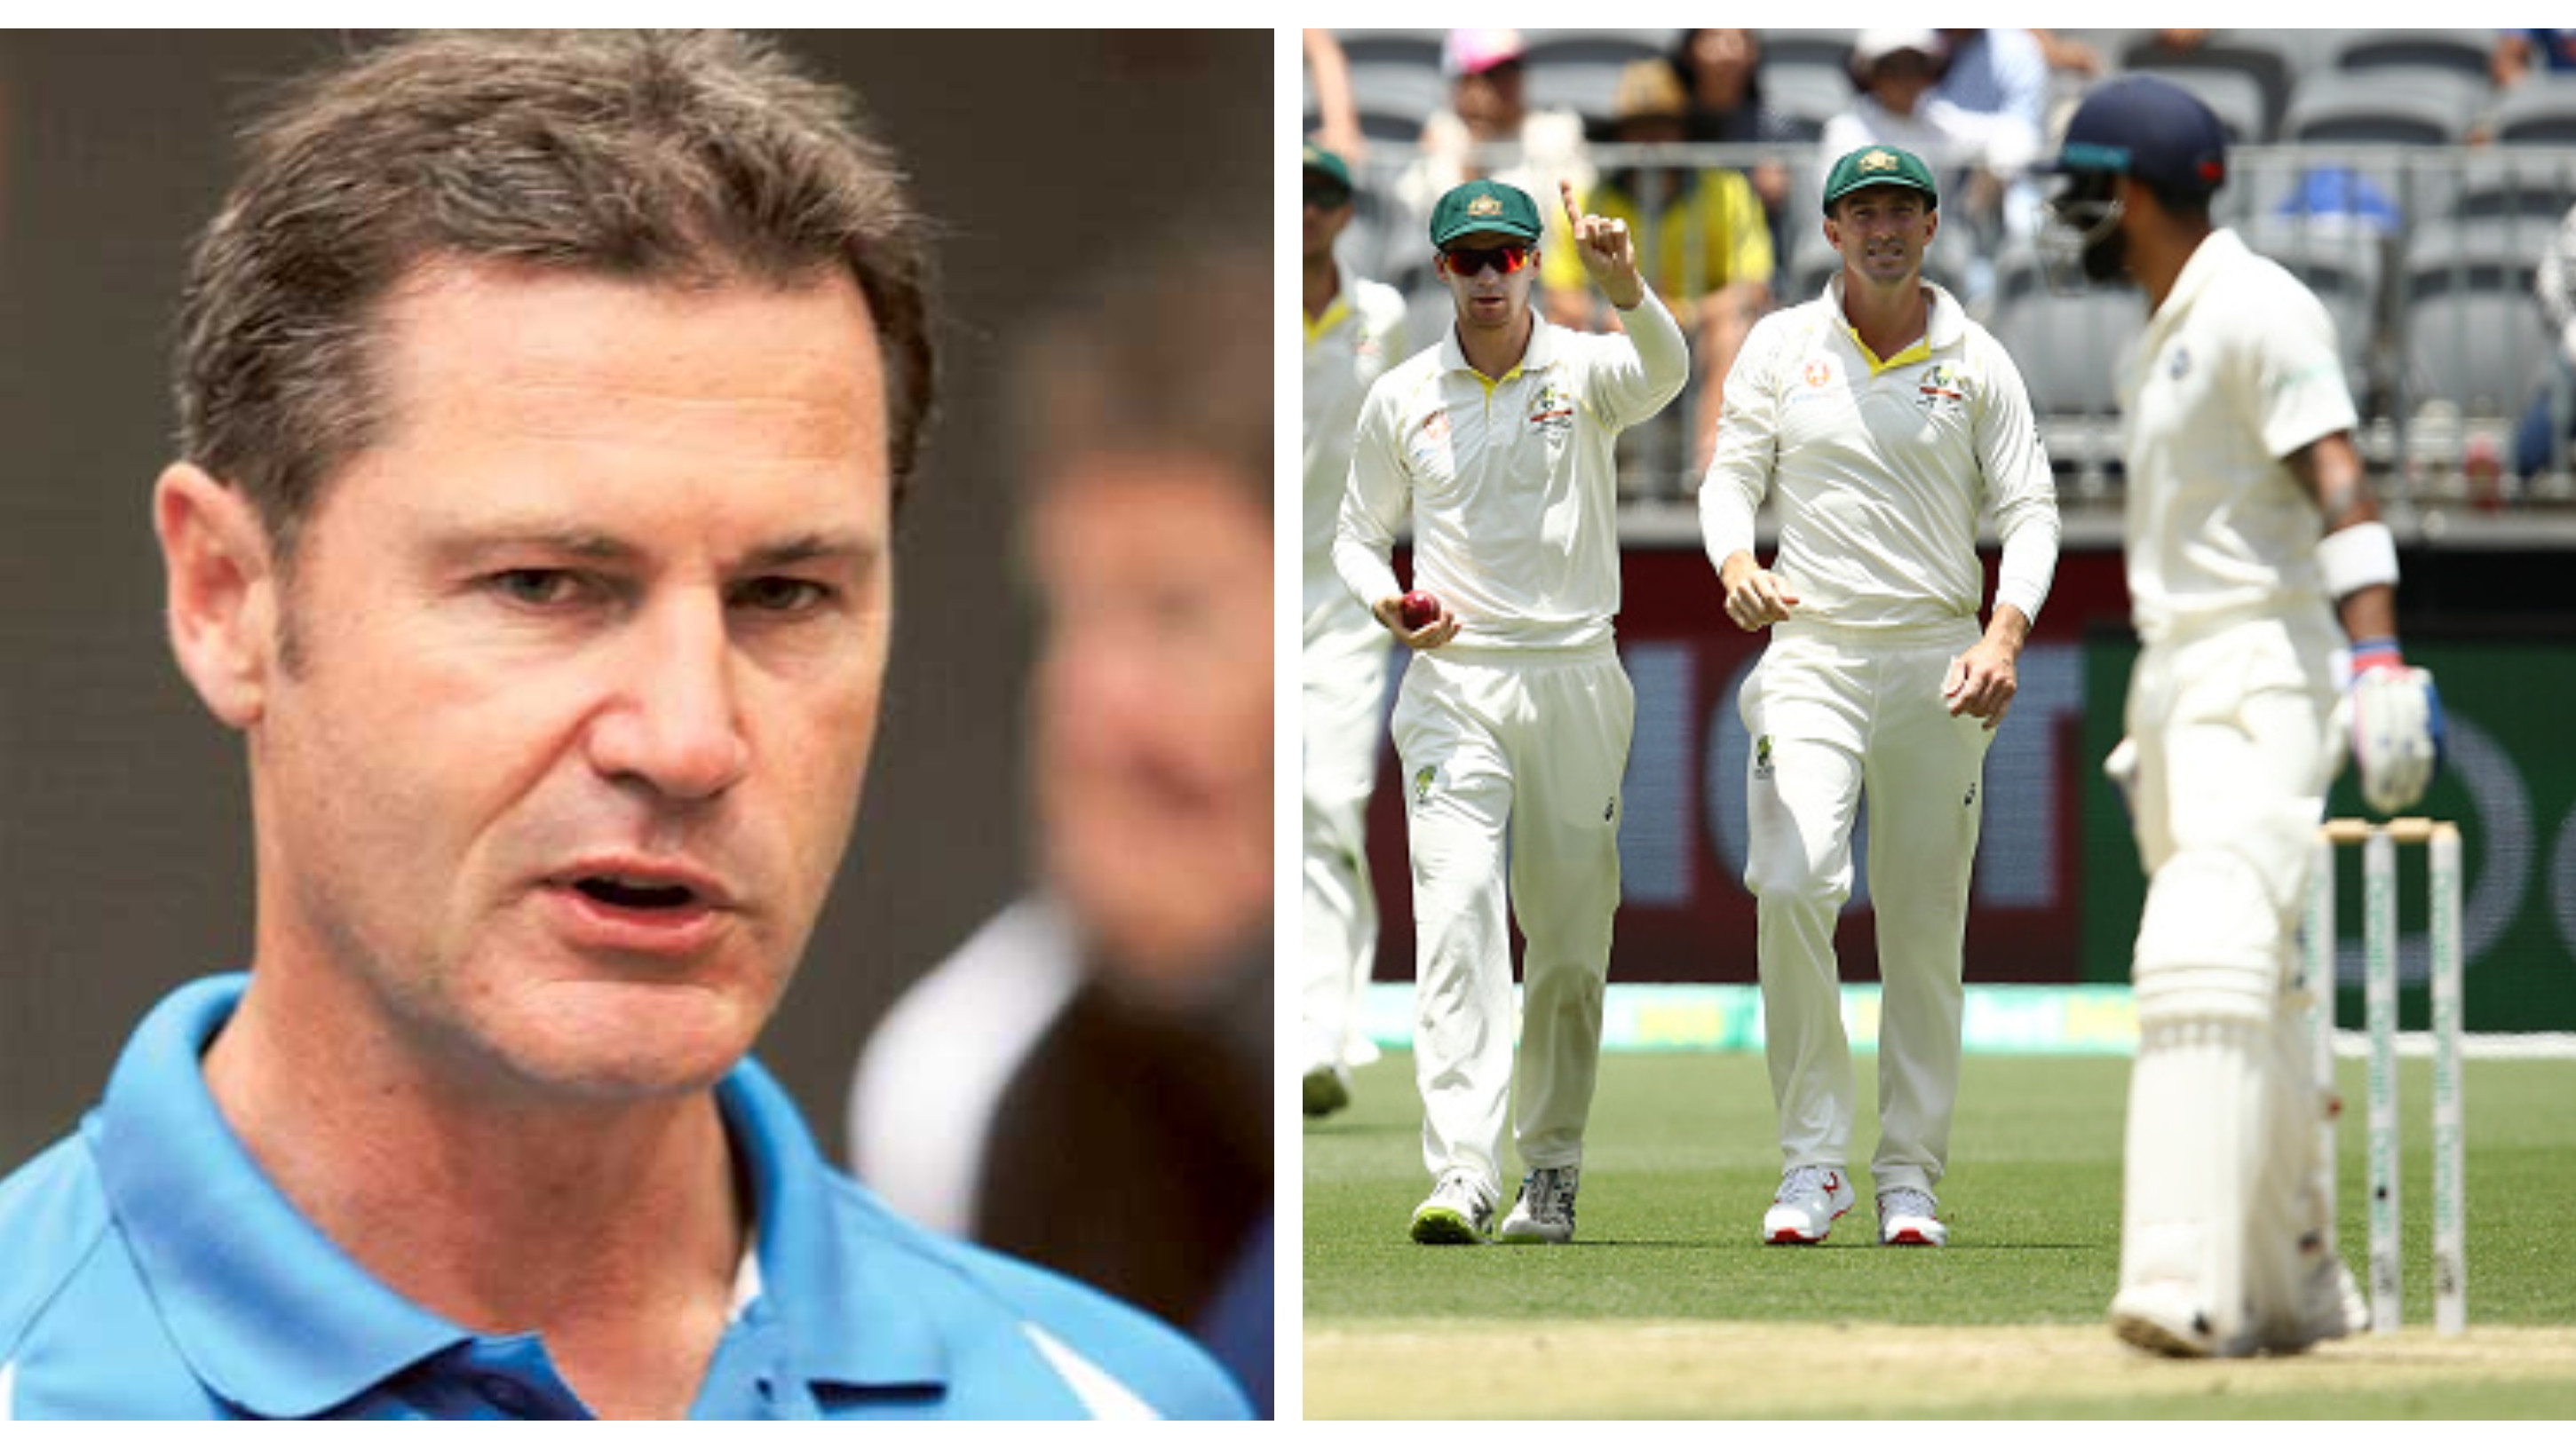 AUS v IND 2018-19: Soft signal was introduced to assist the umpires in decision making, says Simon Taufel